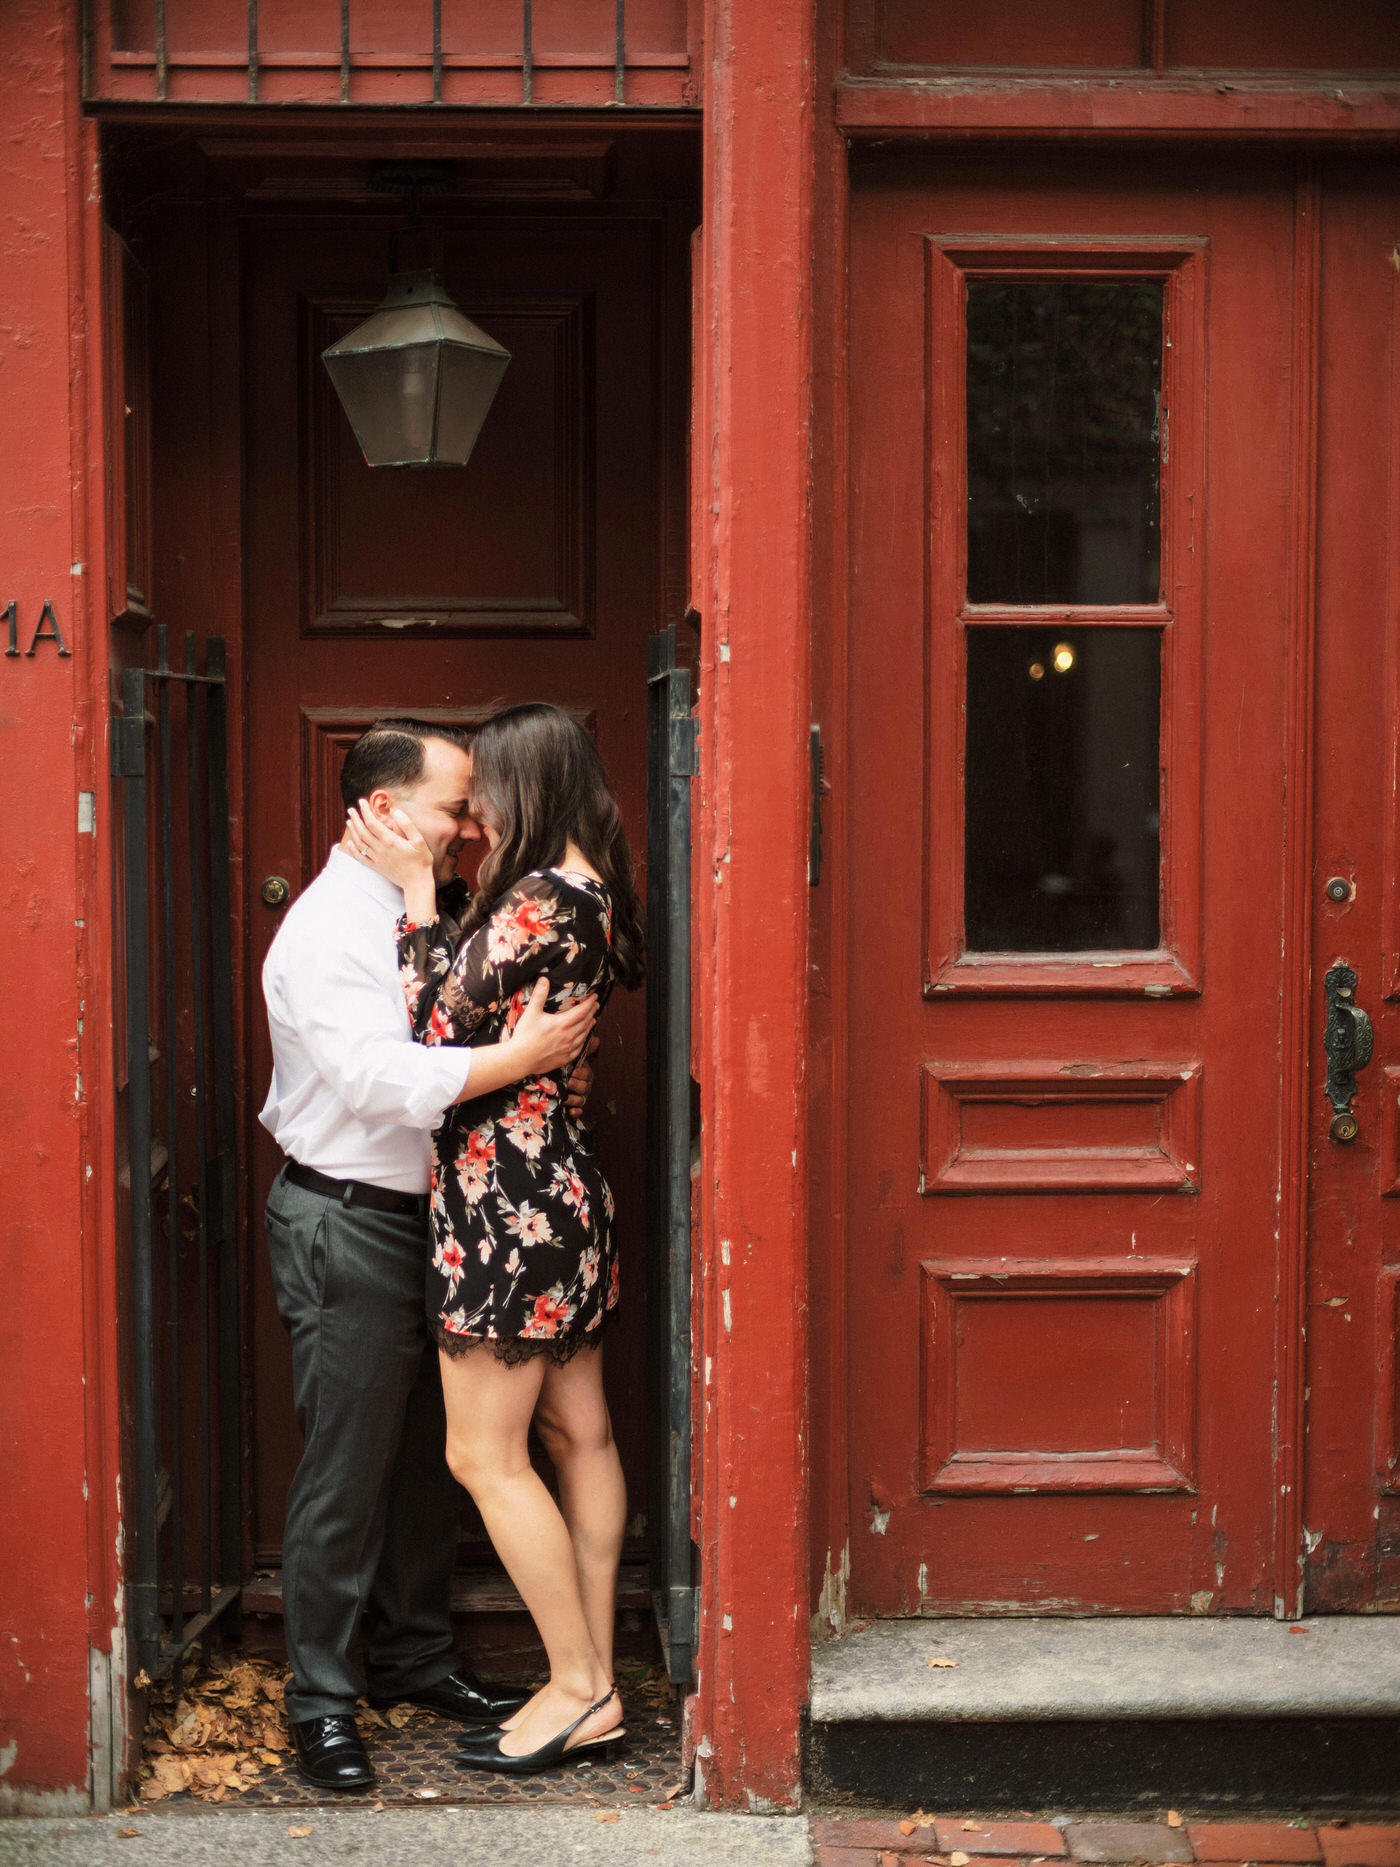 090-engagement-session-in-historic-beacon-hill-boston-by-top-fine-art-photographer.jpg